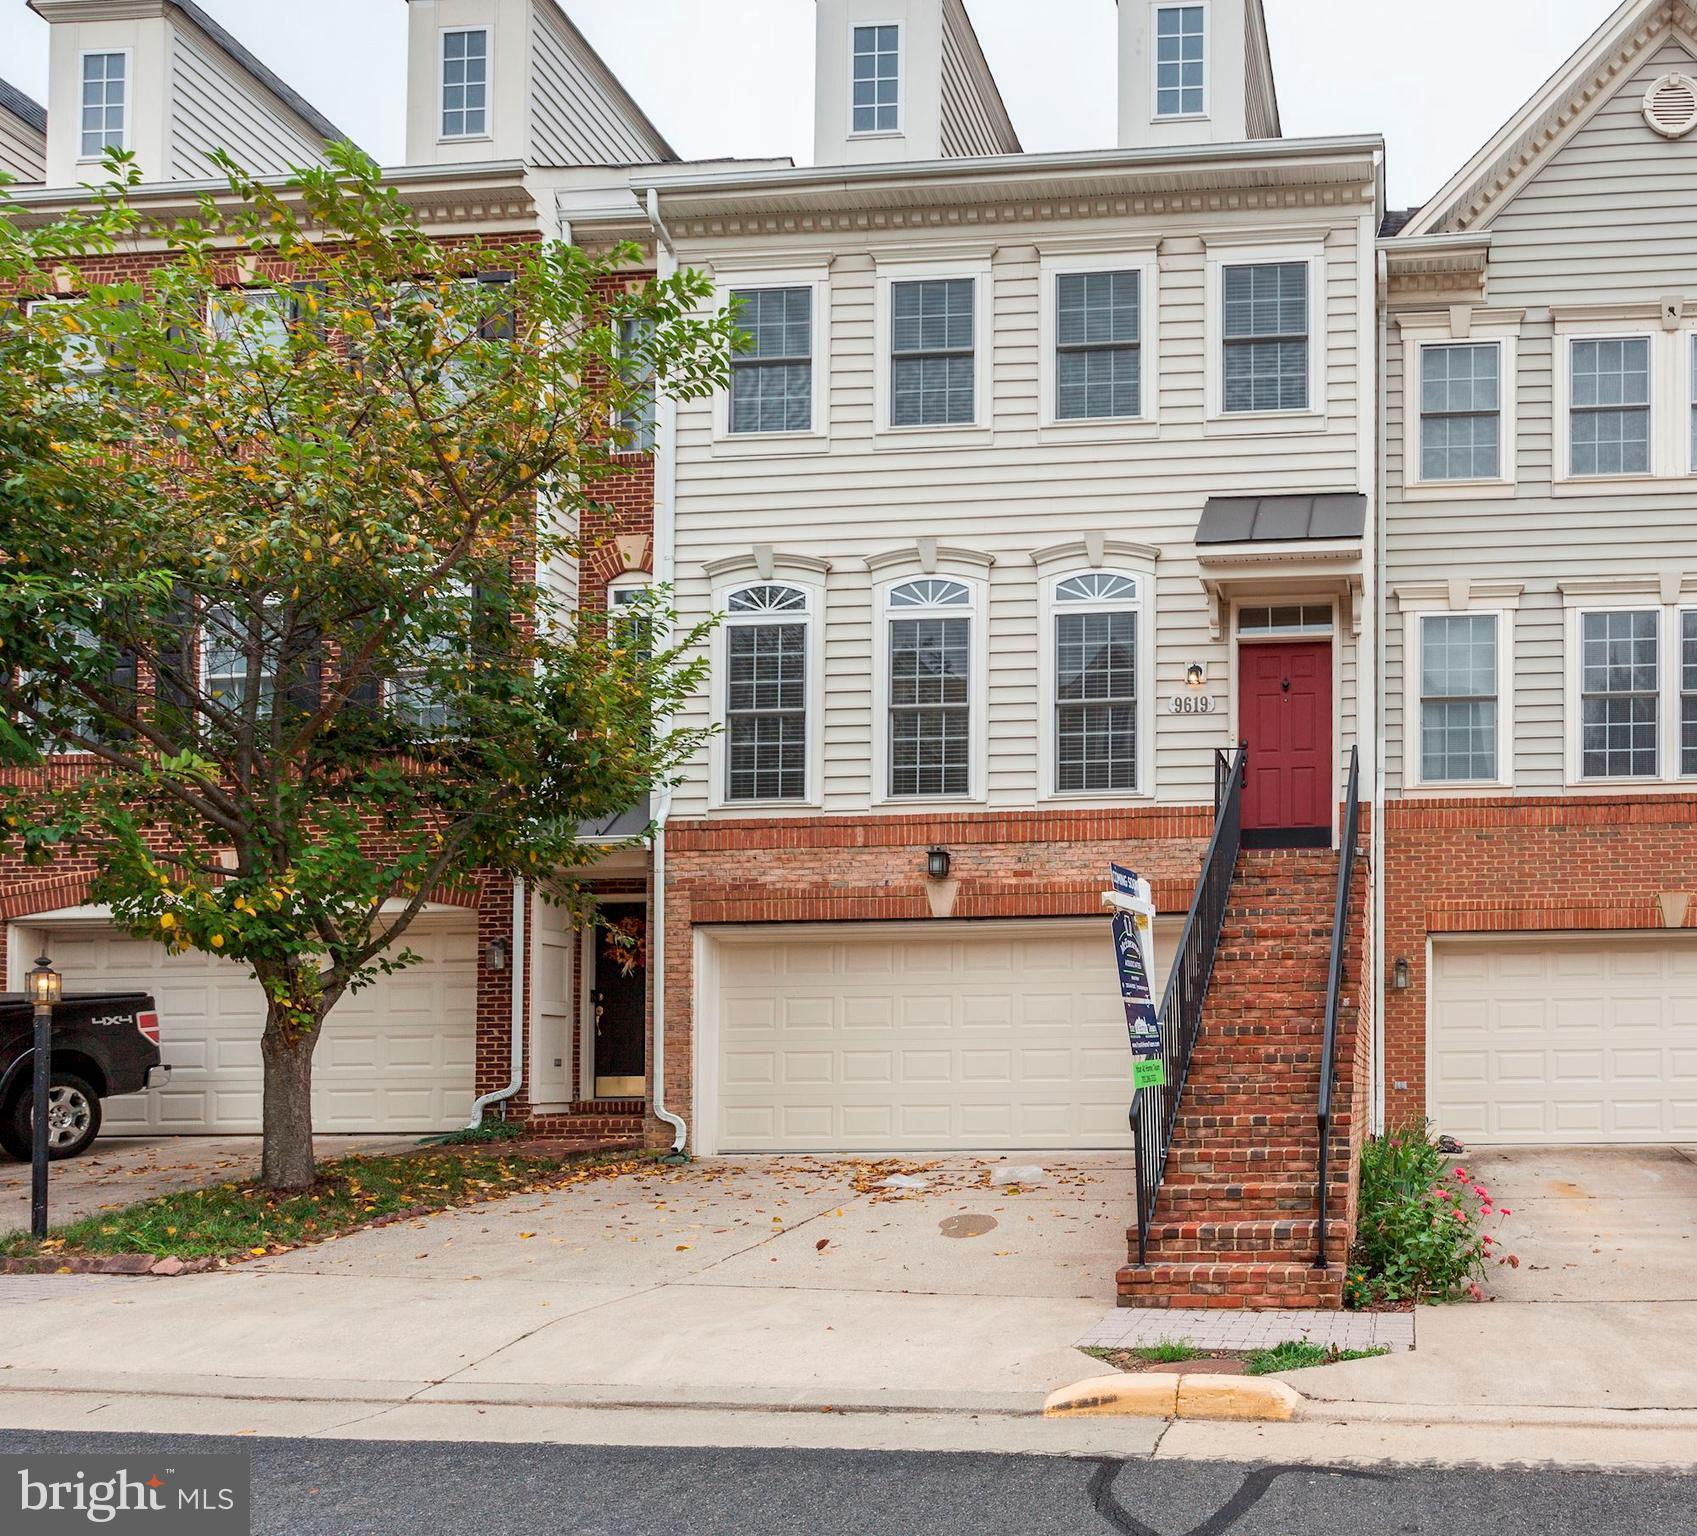 NEW PRICE-Beautiful move-in ready home in convenient Lorton Station! Main level offers lots of light, hardwood floors, open kitchen w/breakfast eating & sitting areas, dining room, & living room. Large deck off kitchen. Upstairs you~ll find the relaxing owner~s suite. Laundry on bedroom level. Roof/Water Heater replaced 2018. Close to Lorton Town Center, VRE, & Ft. Belvoir-Commuters dream!